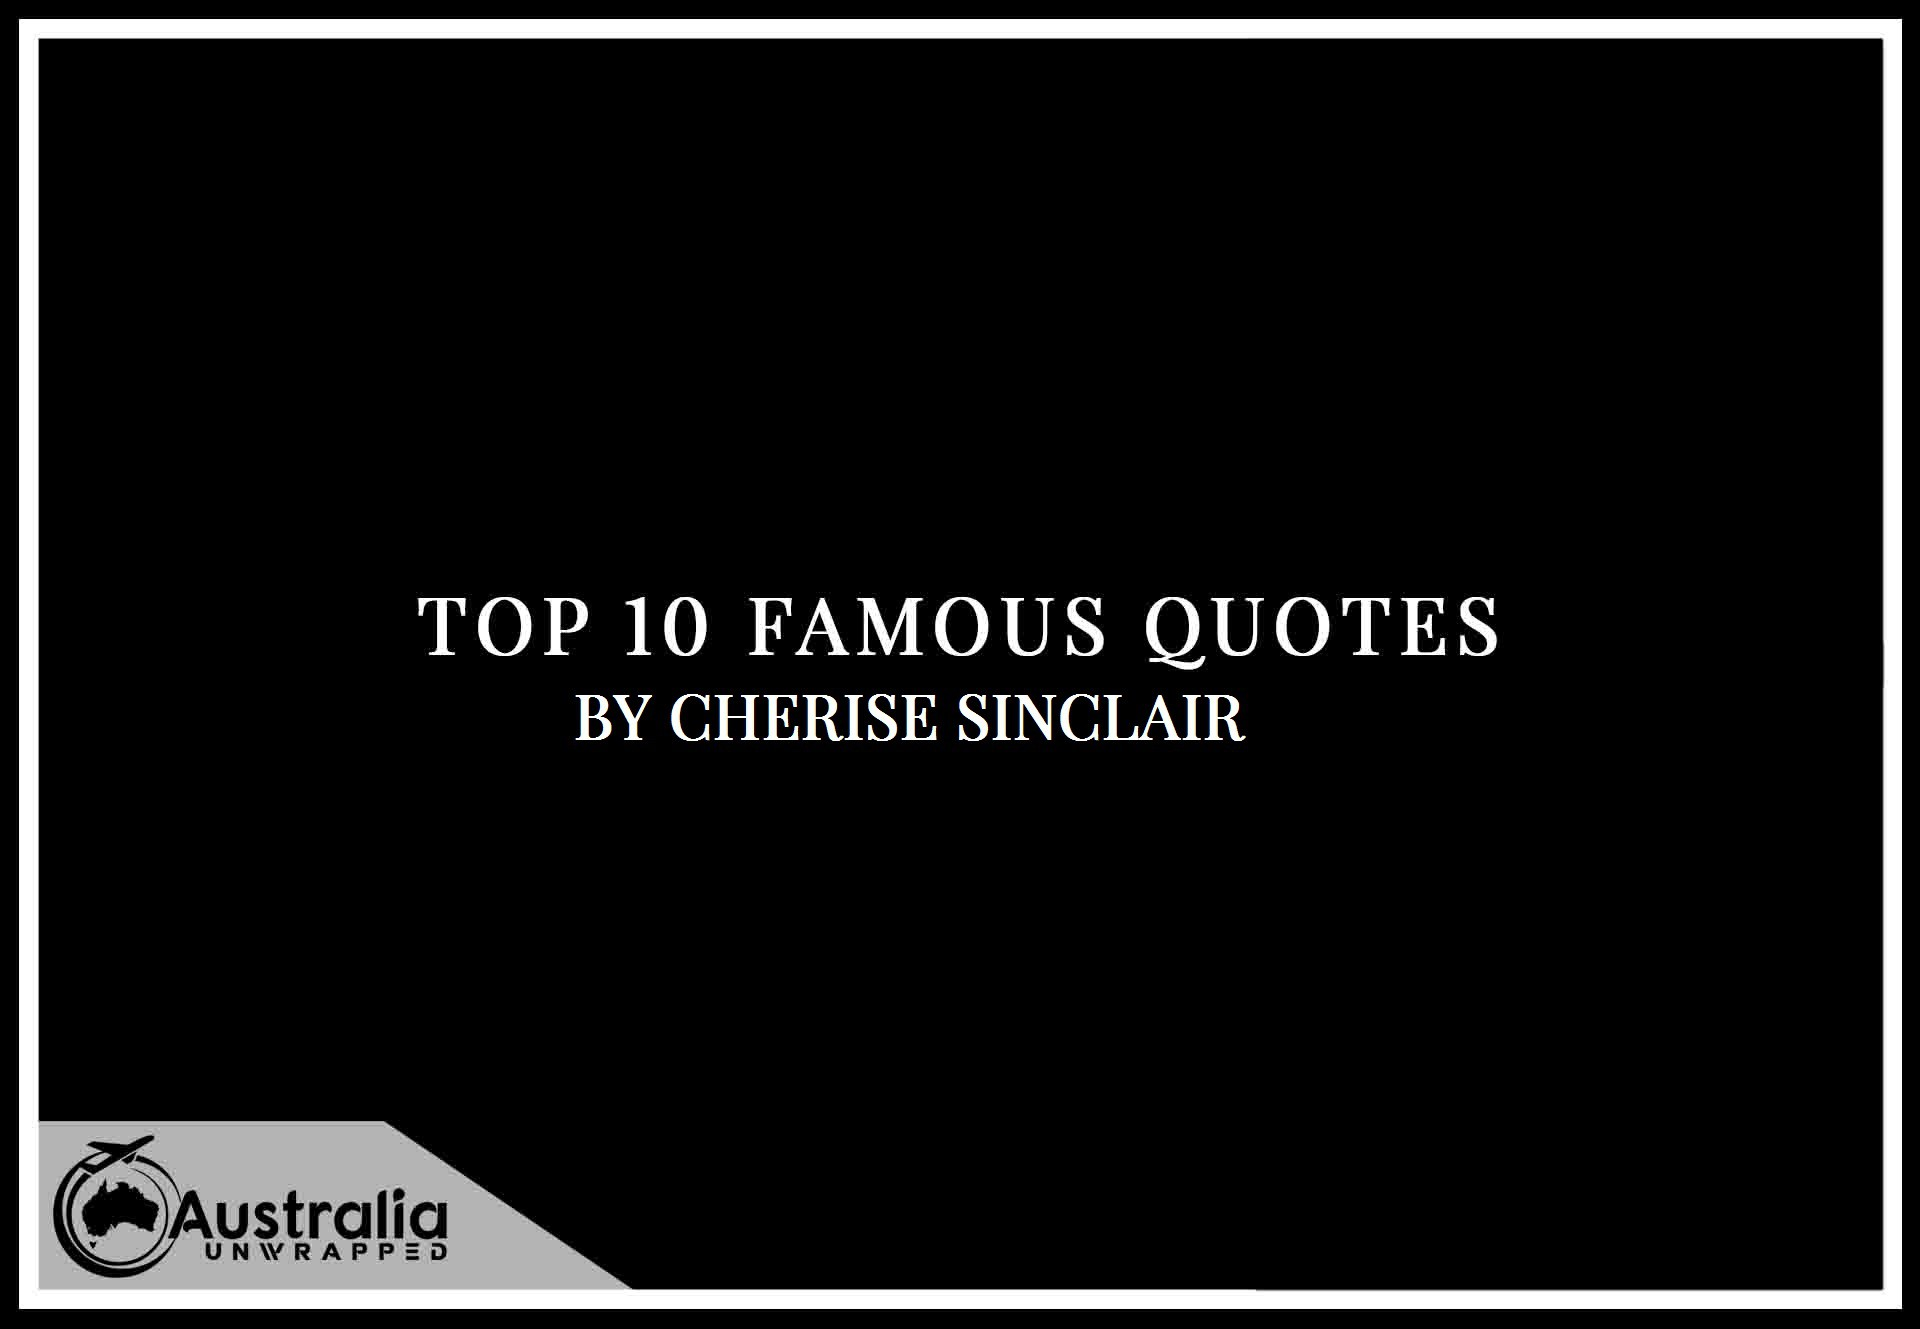 Cherise Sinclair's Top 10 Popular and Famous Quotes